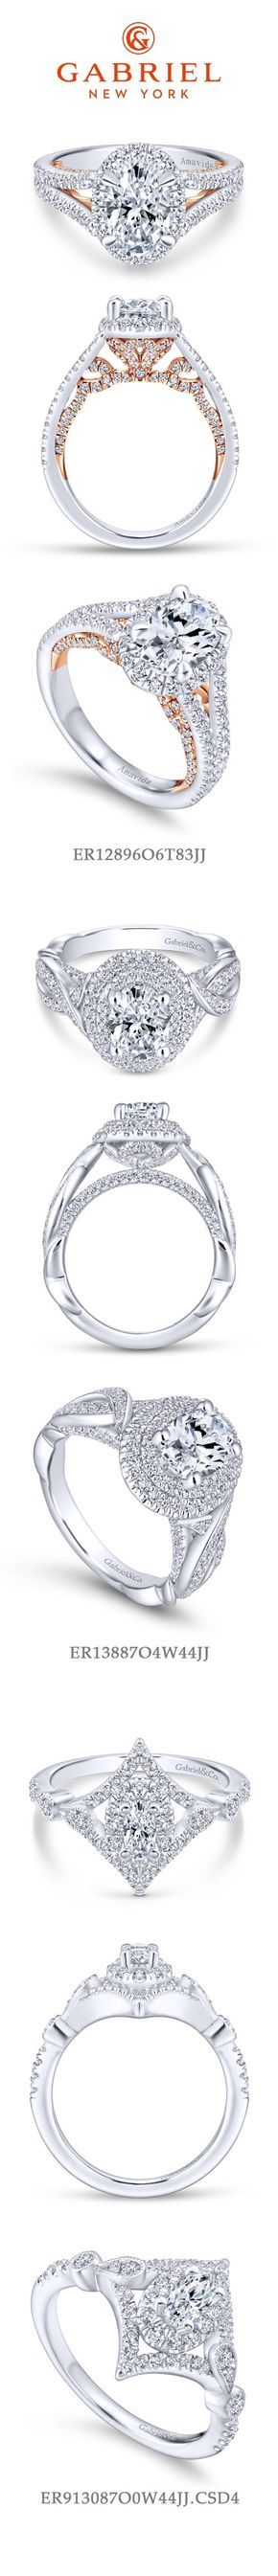 Gabriel NY - Preferred Fine Jewelry and Bridal Brand. Top 3 Oval Engagement Rings. 1) 18k White Gold Rose Gold Oval Halo Engagement Ring 2) 14k White Gold Double Halo Engagement Ring 3) Vintage 14k White Gold Halo Wedding Ring